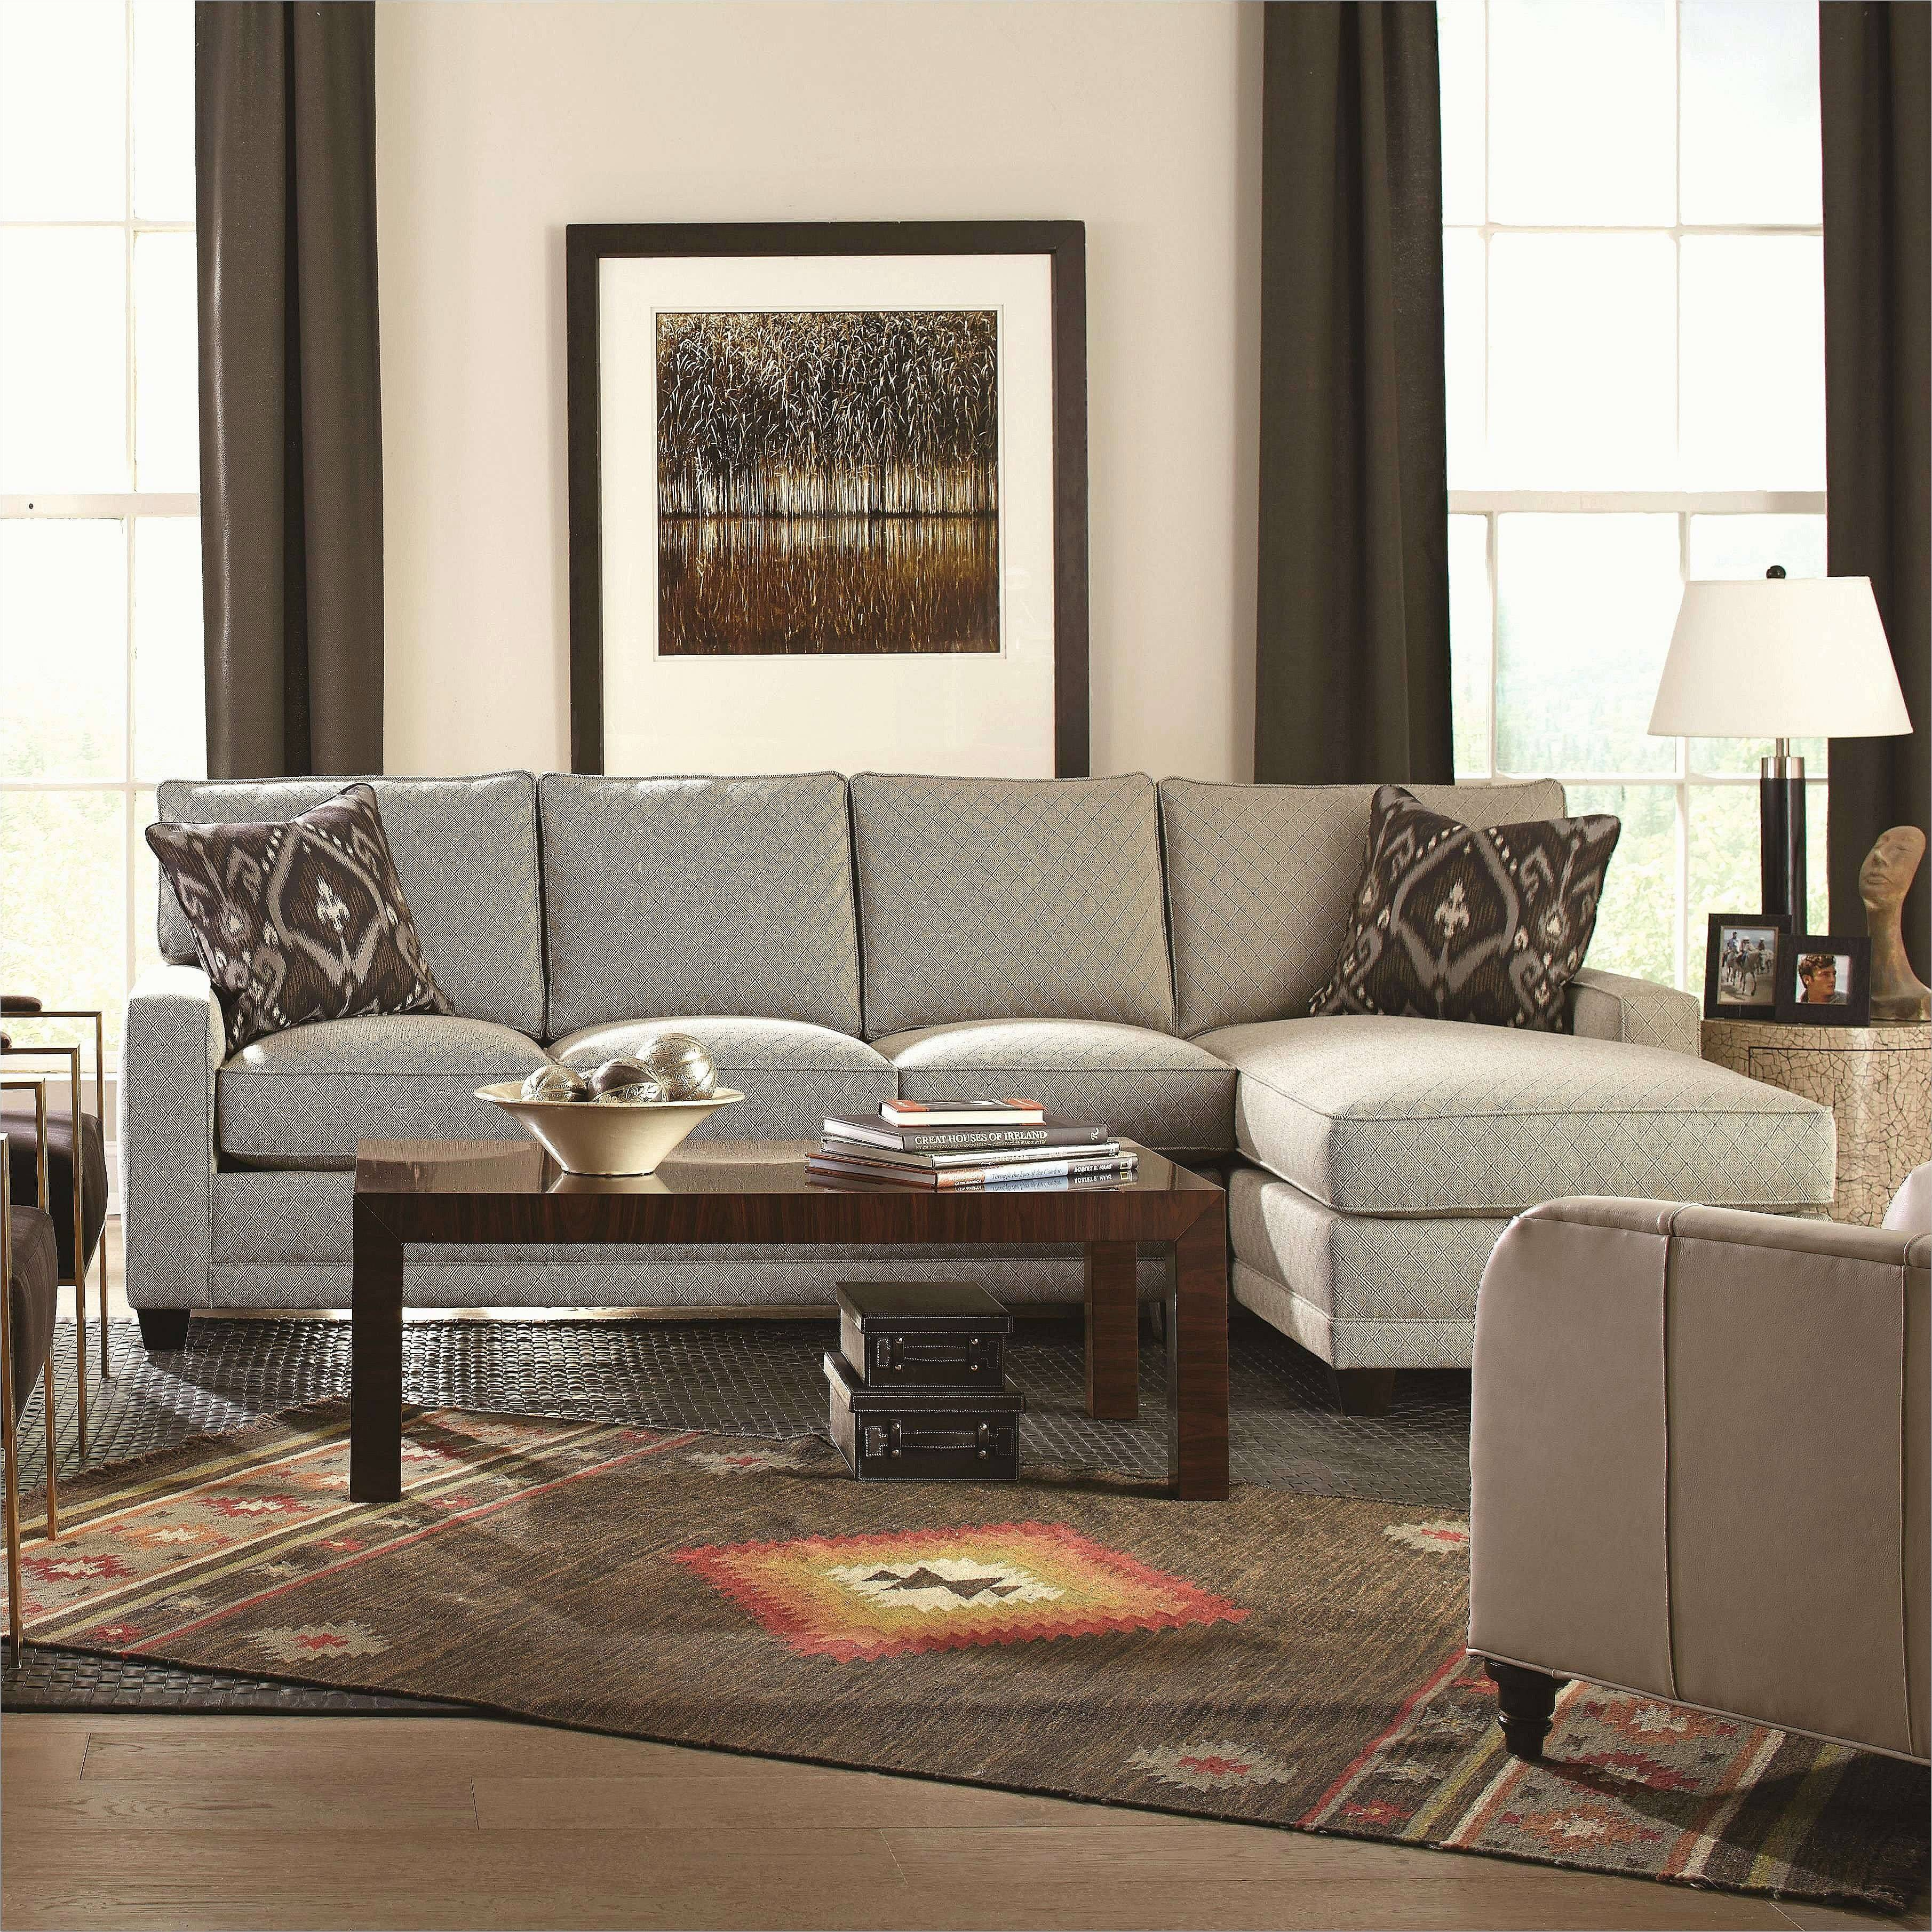 cabinets for living room designs lovely elegant modern kitchen cabinets of cabinets for living room designs